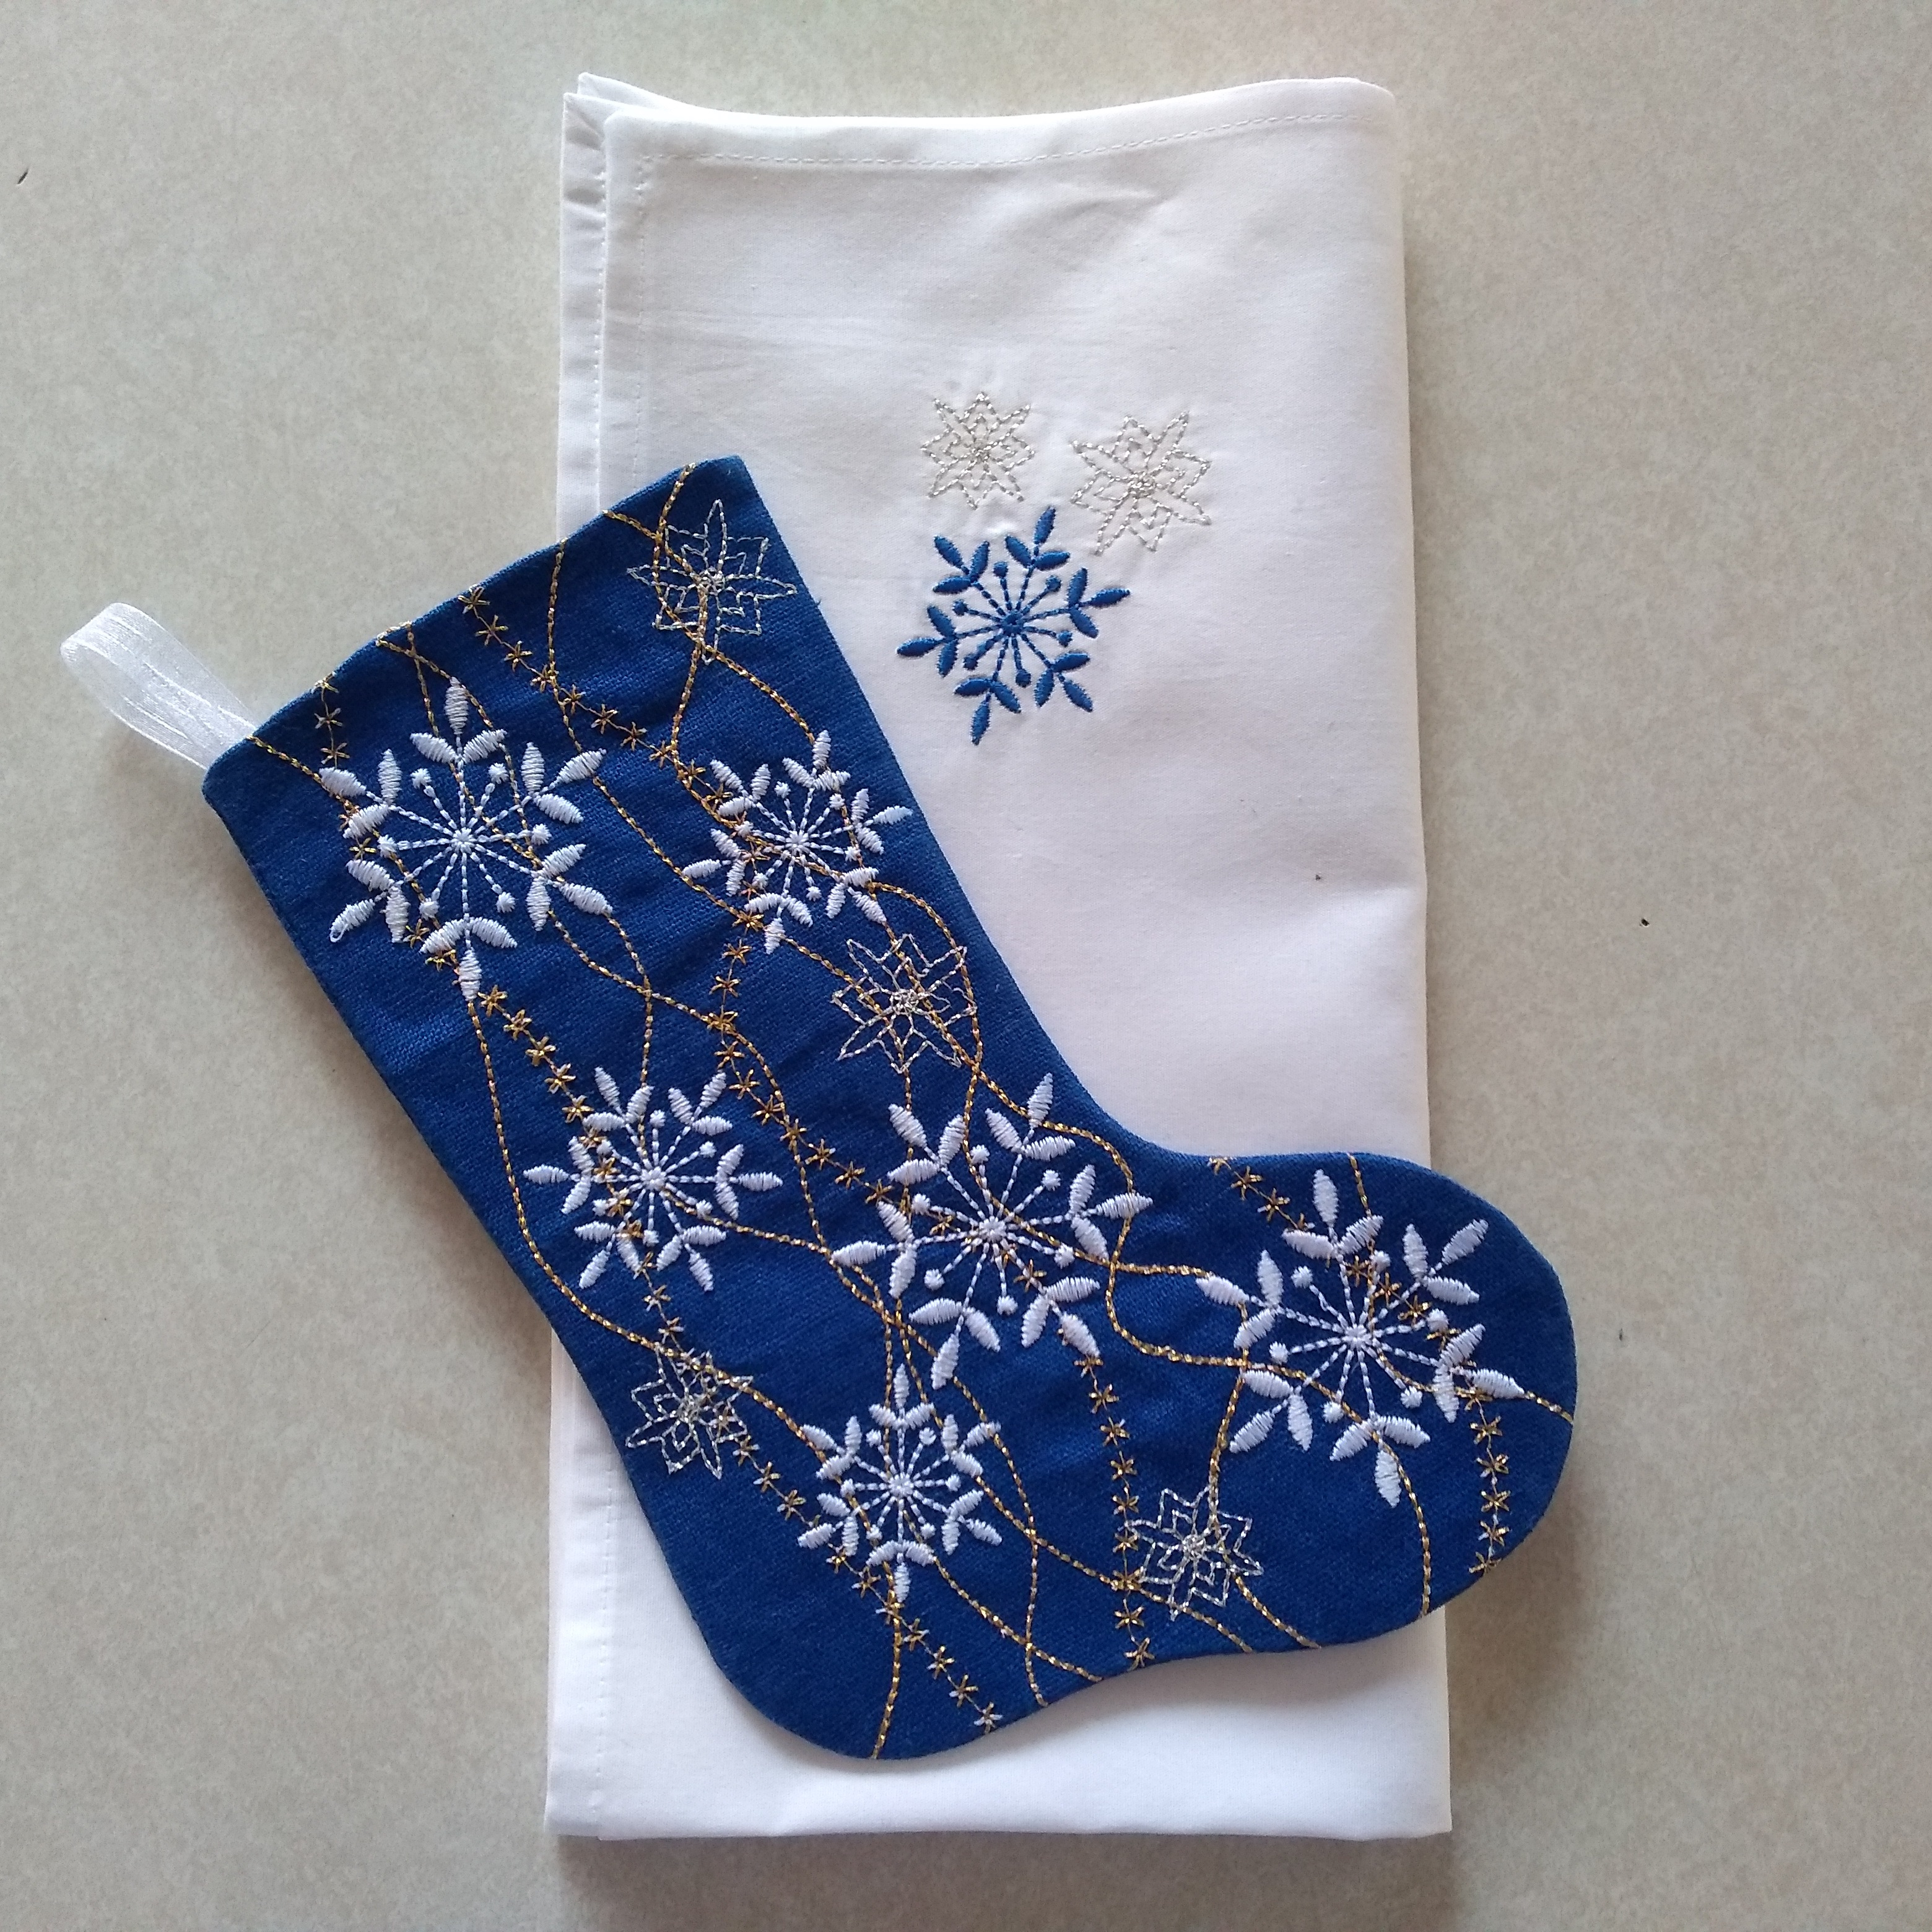 Snowflake Gift Stocking Complete Project Kit, CD & Instructions-5